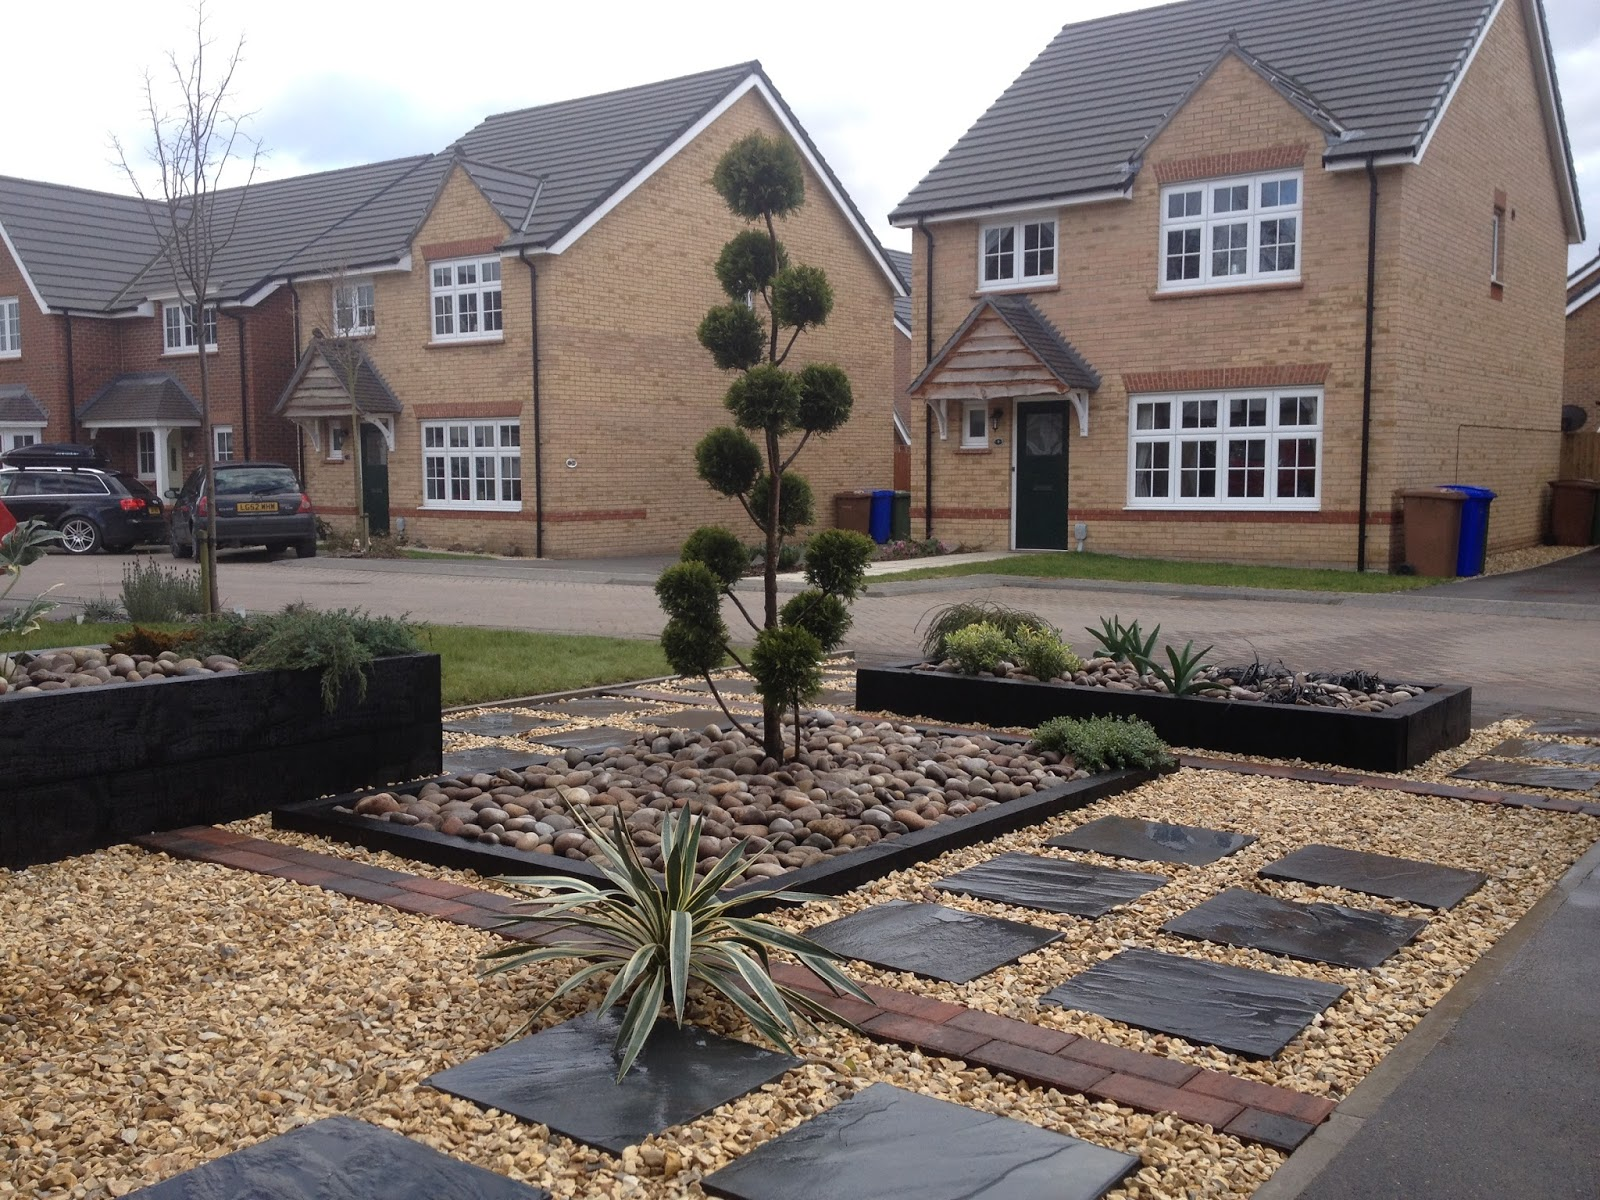 Garden Designer In The Hull Area Beverley East Yorkshire North Lincolnshire And Uk Wide Contemporary Front Garden Holtby Gardens Dunswell Lane Cottingham East Yorkshire Hu16 4jx